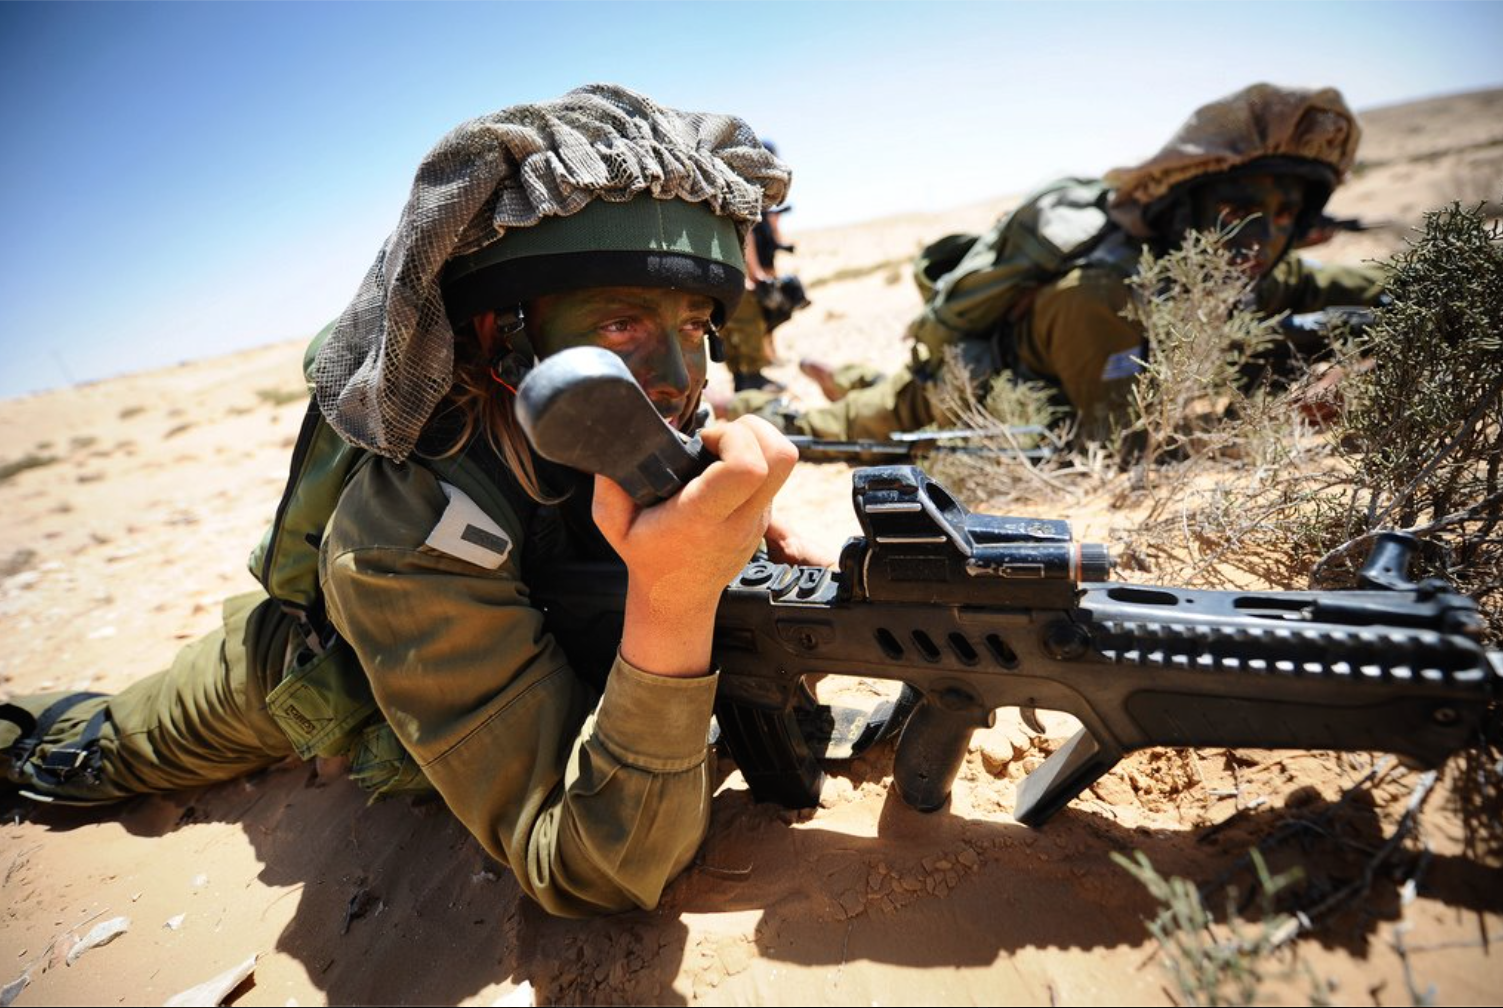 Israel and Stuff » IDF Unit Picked to Fight Invading ISIS